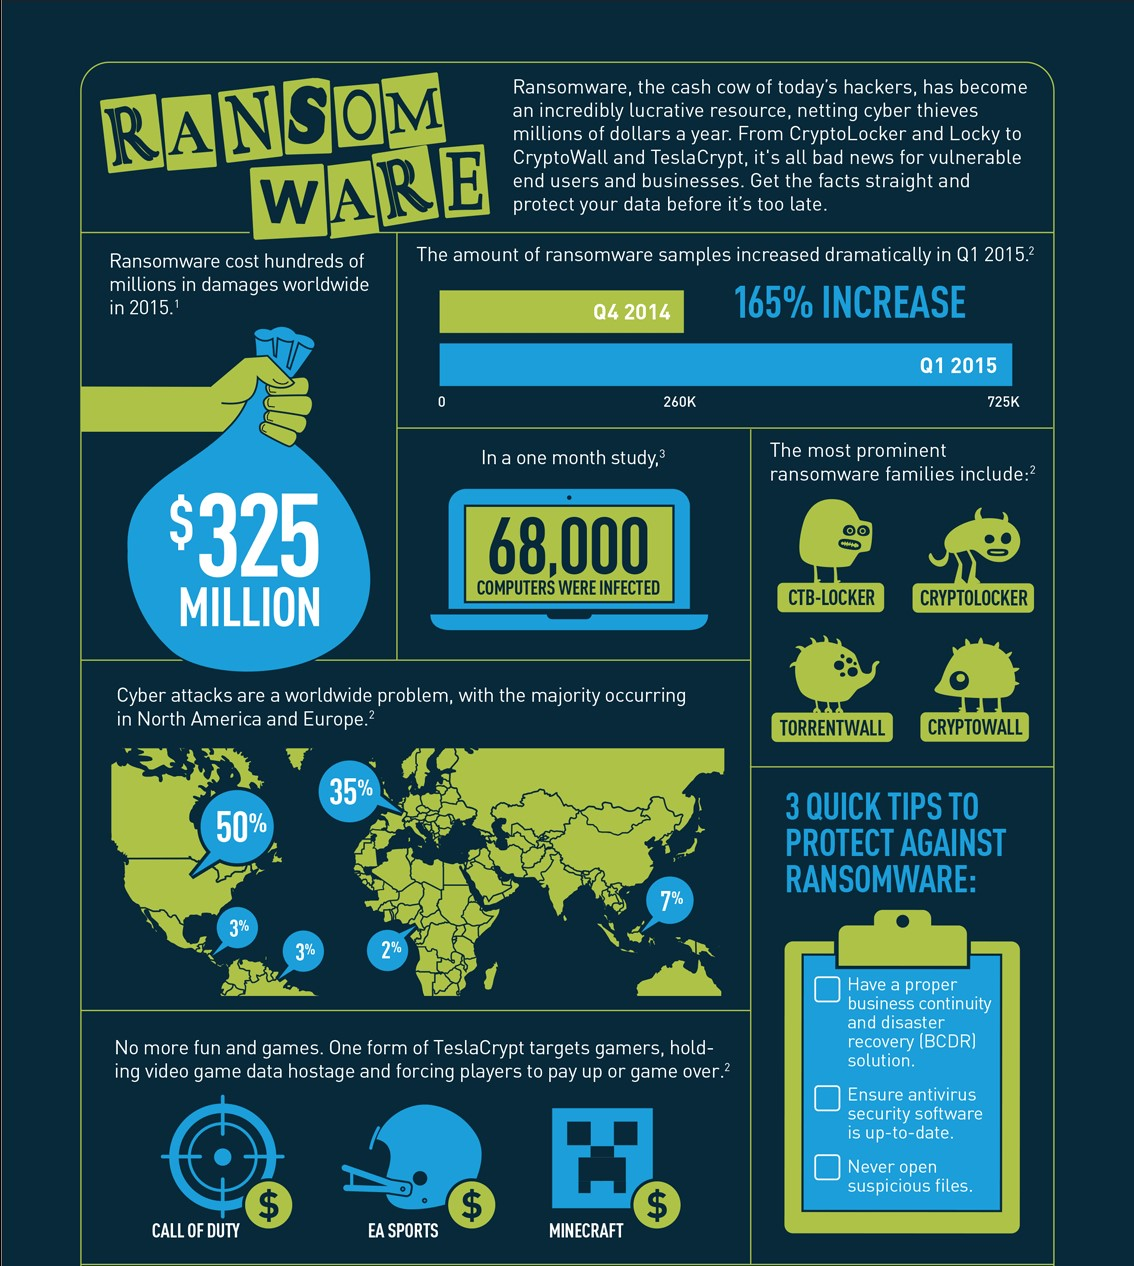 ransomware_infographic.jpg